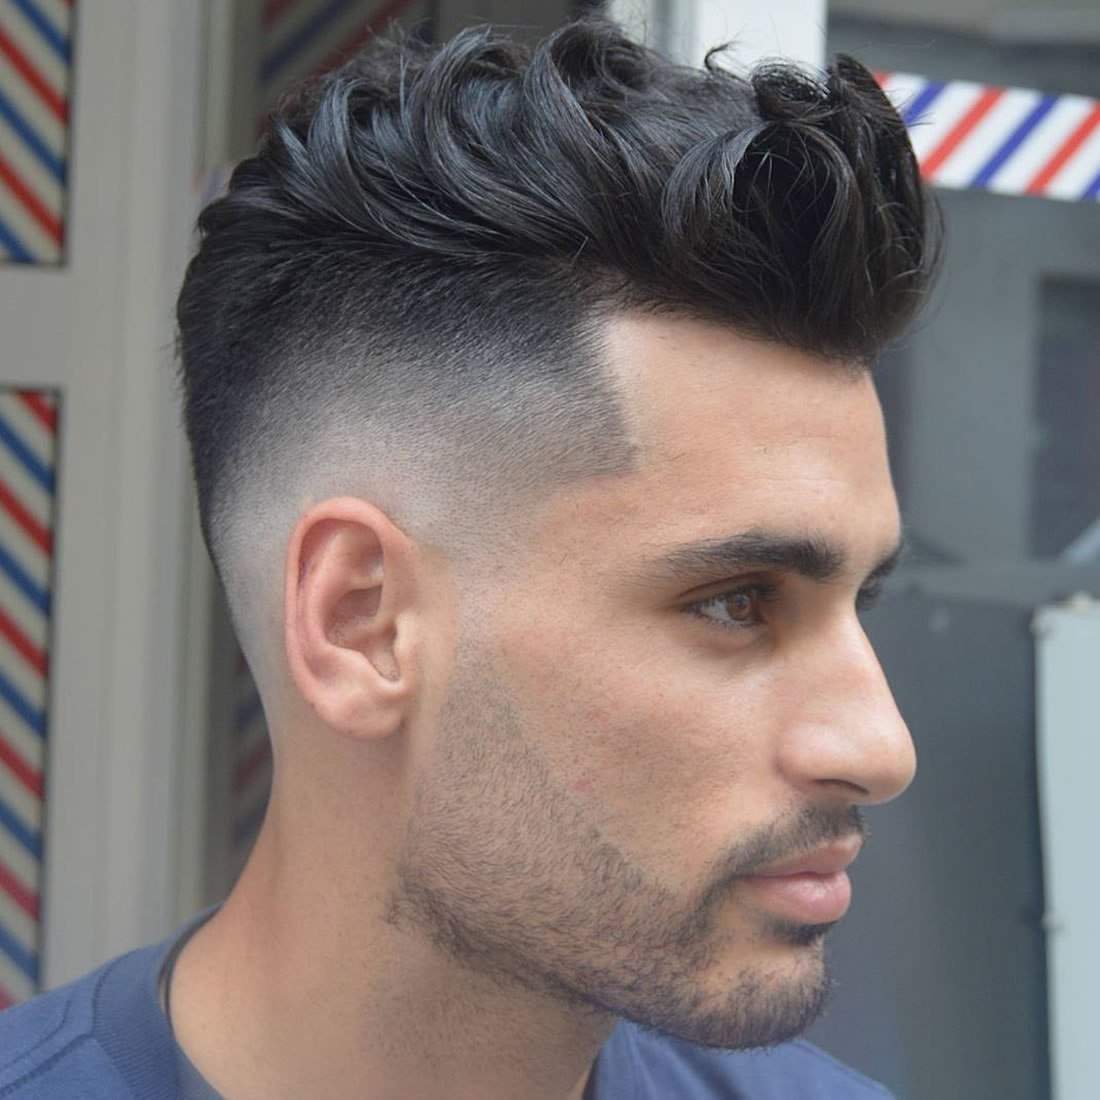 New Men's Hairstyles 2018 – 2019 40 Best Hair Tutorial For Ideas With Pictures